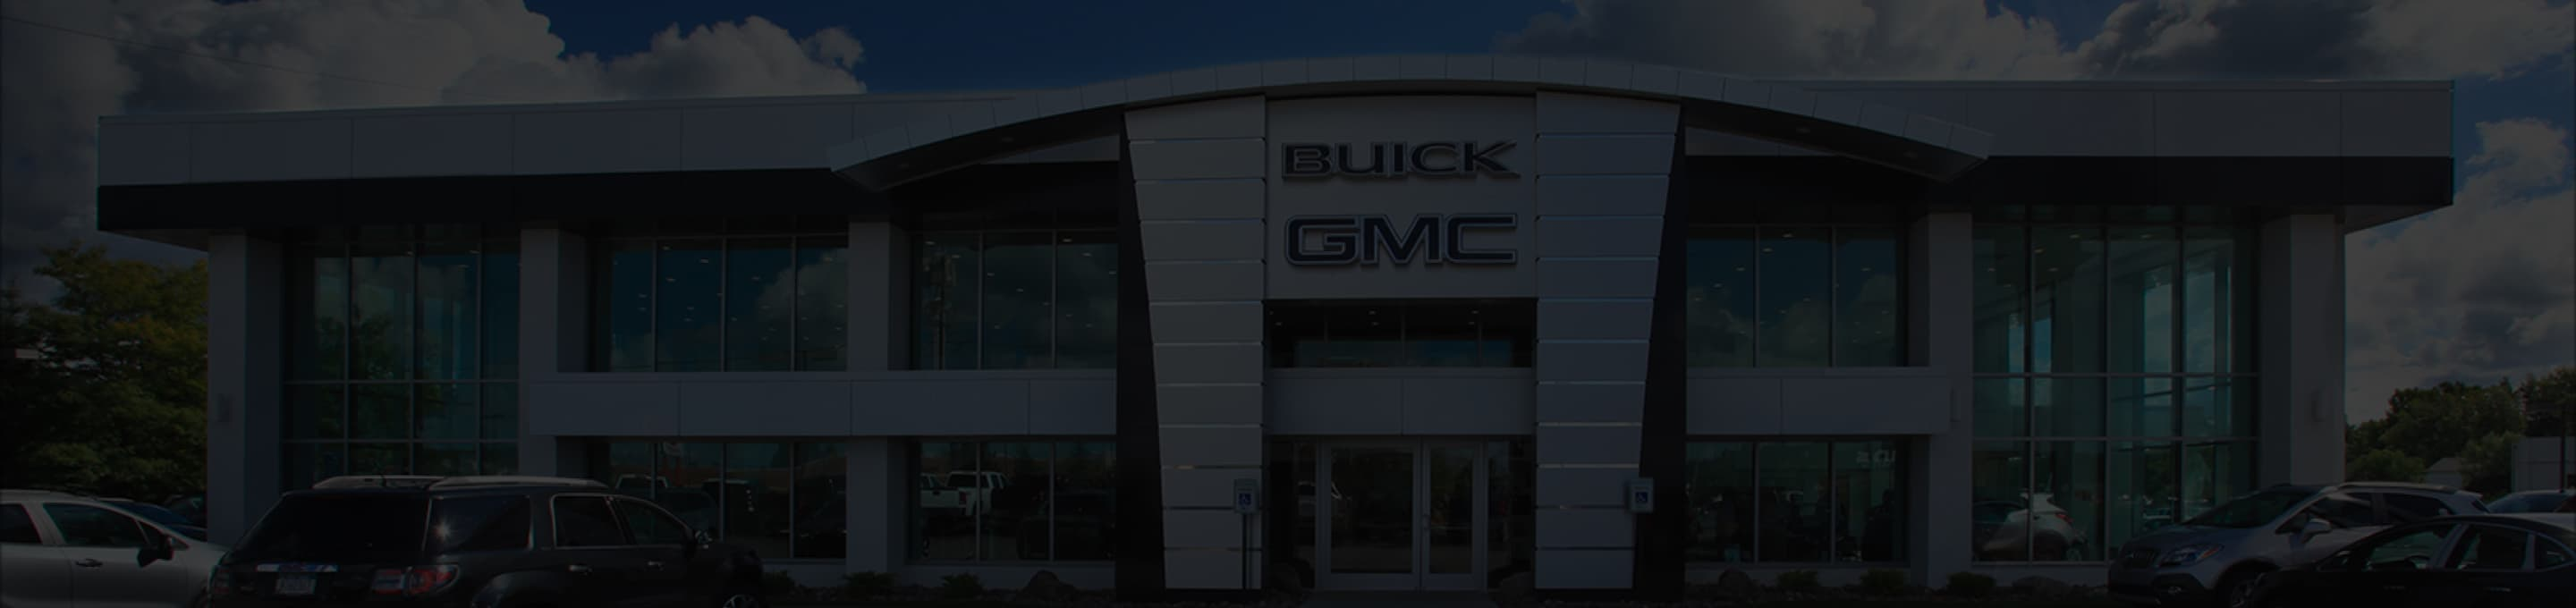 An exterior shot of a Buick/GMC dealership building